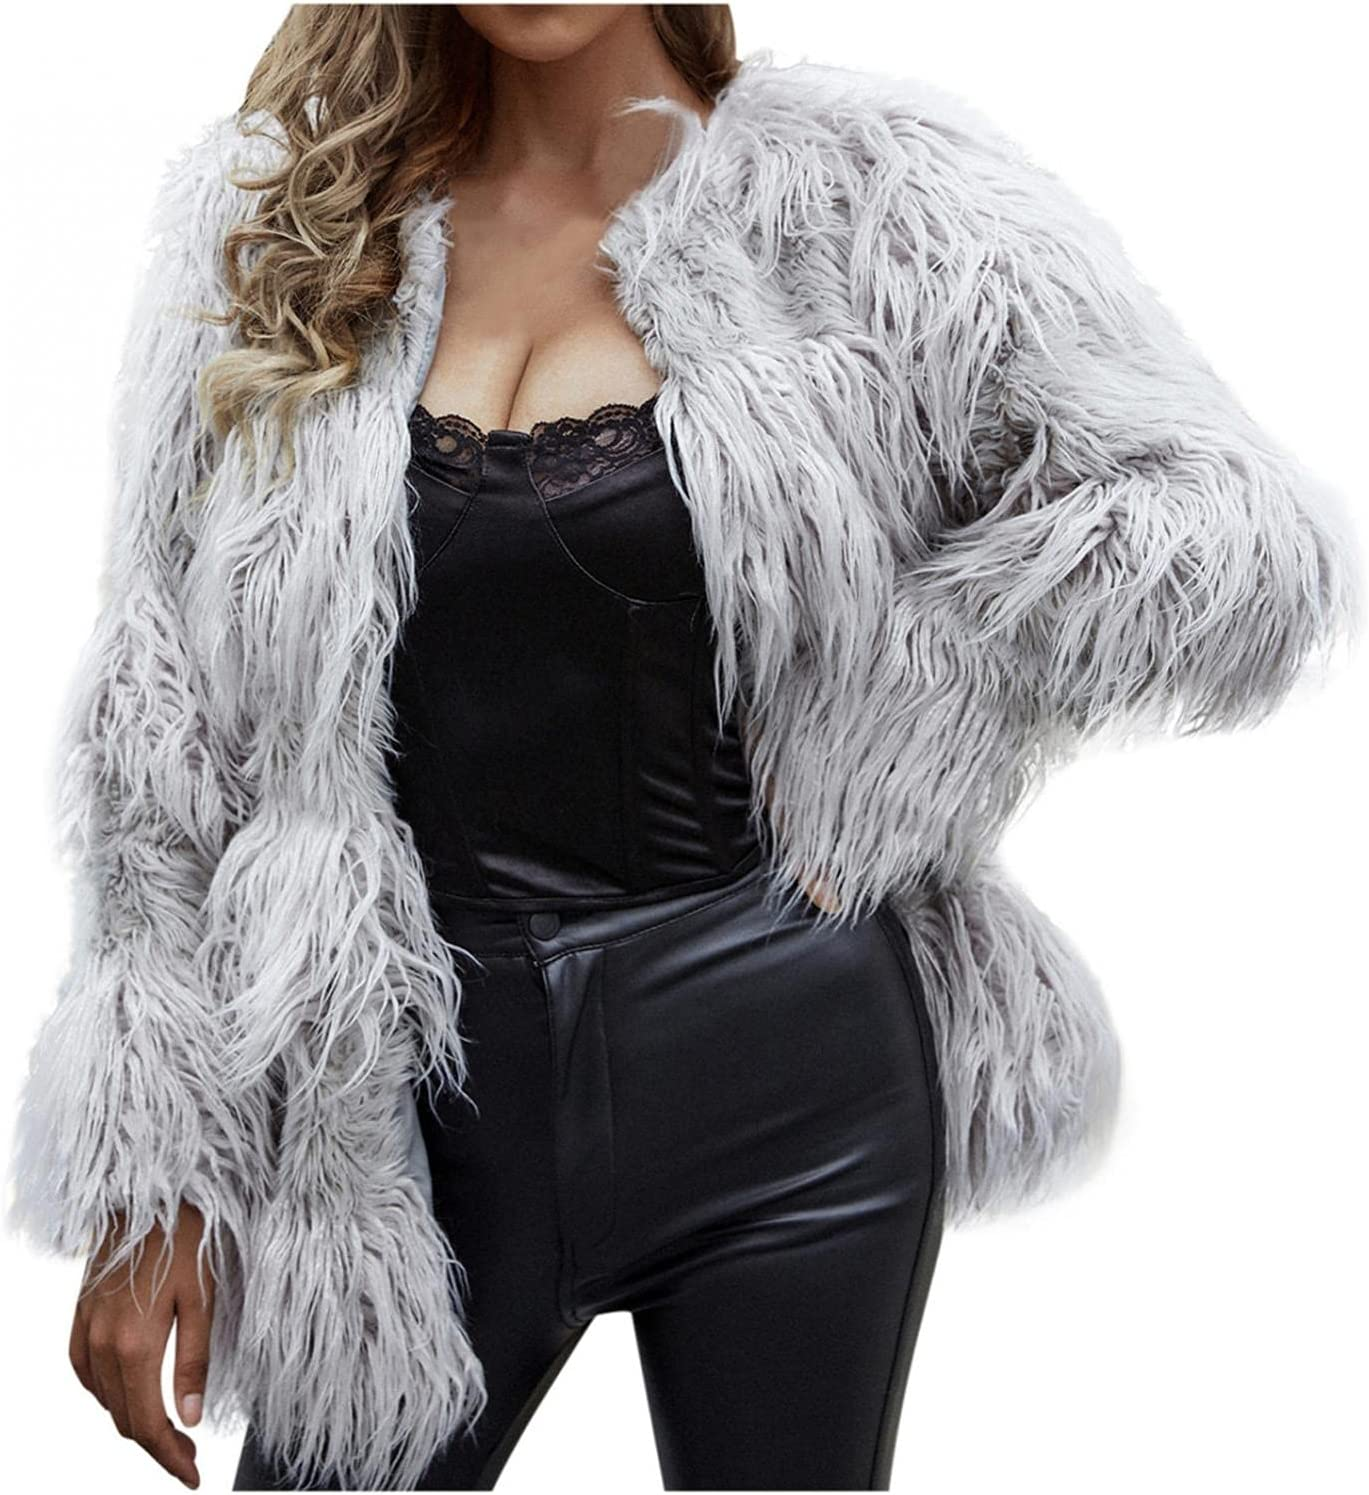 Smileyth Women's Faux Fur Coat Shaggy Solid Color Long Sleeve Open Front Cardigan Plush Warm Winter Outwear Jacket